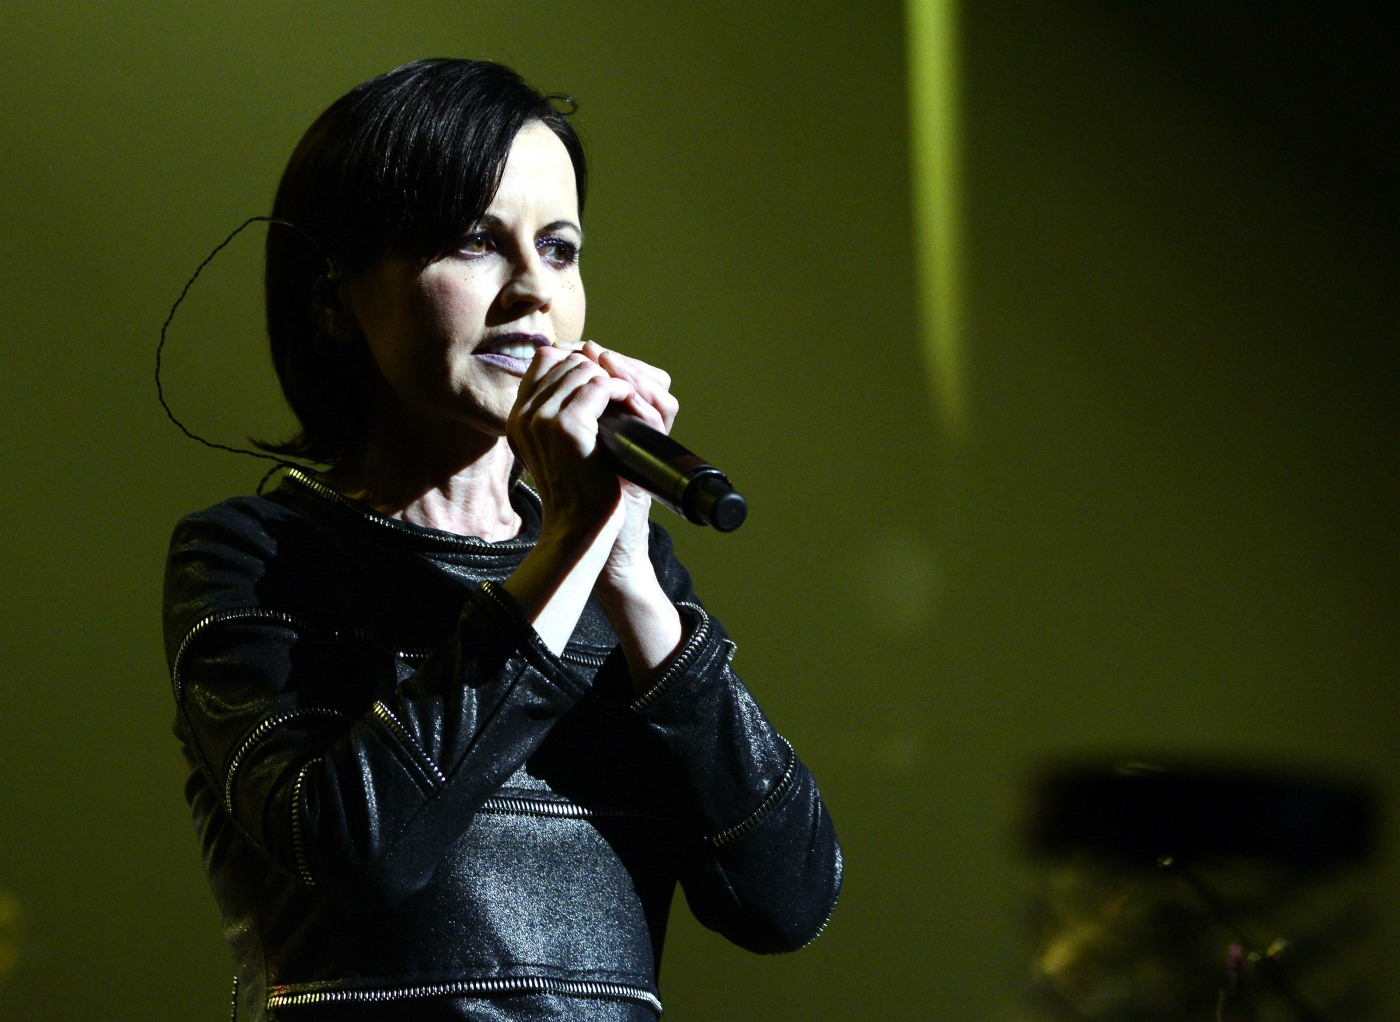 The Cranberries perform at the Bord Gais Energy Theatre